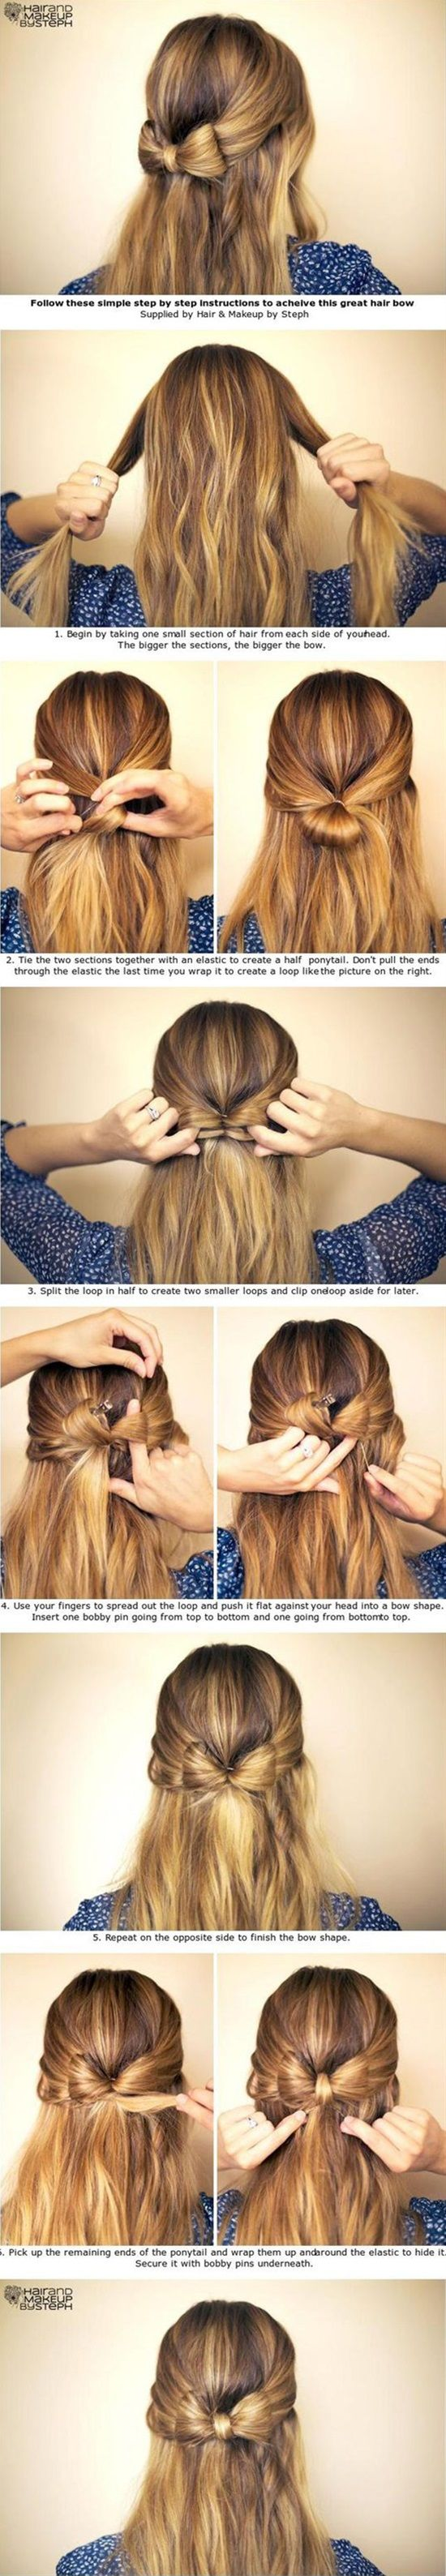 easy u quick hairstyles for office pinterest office